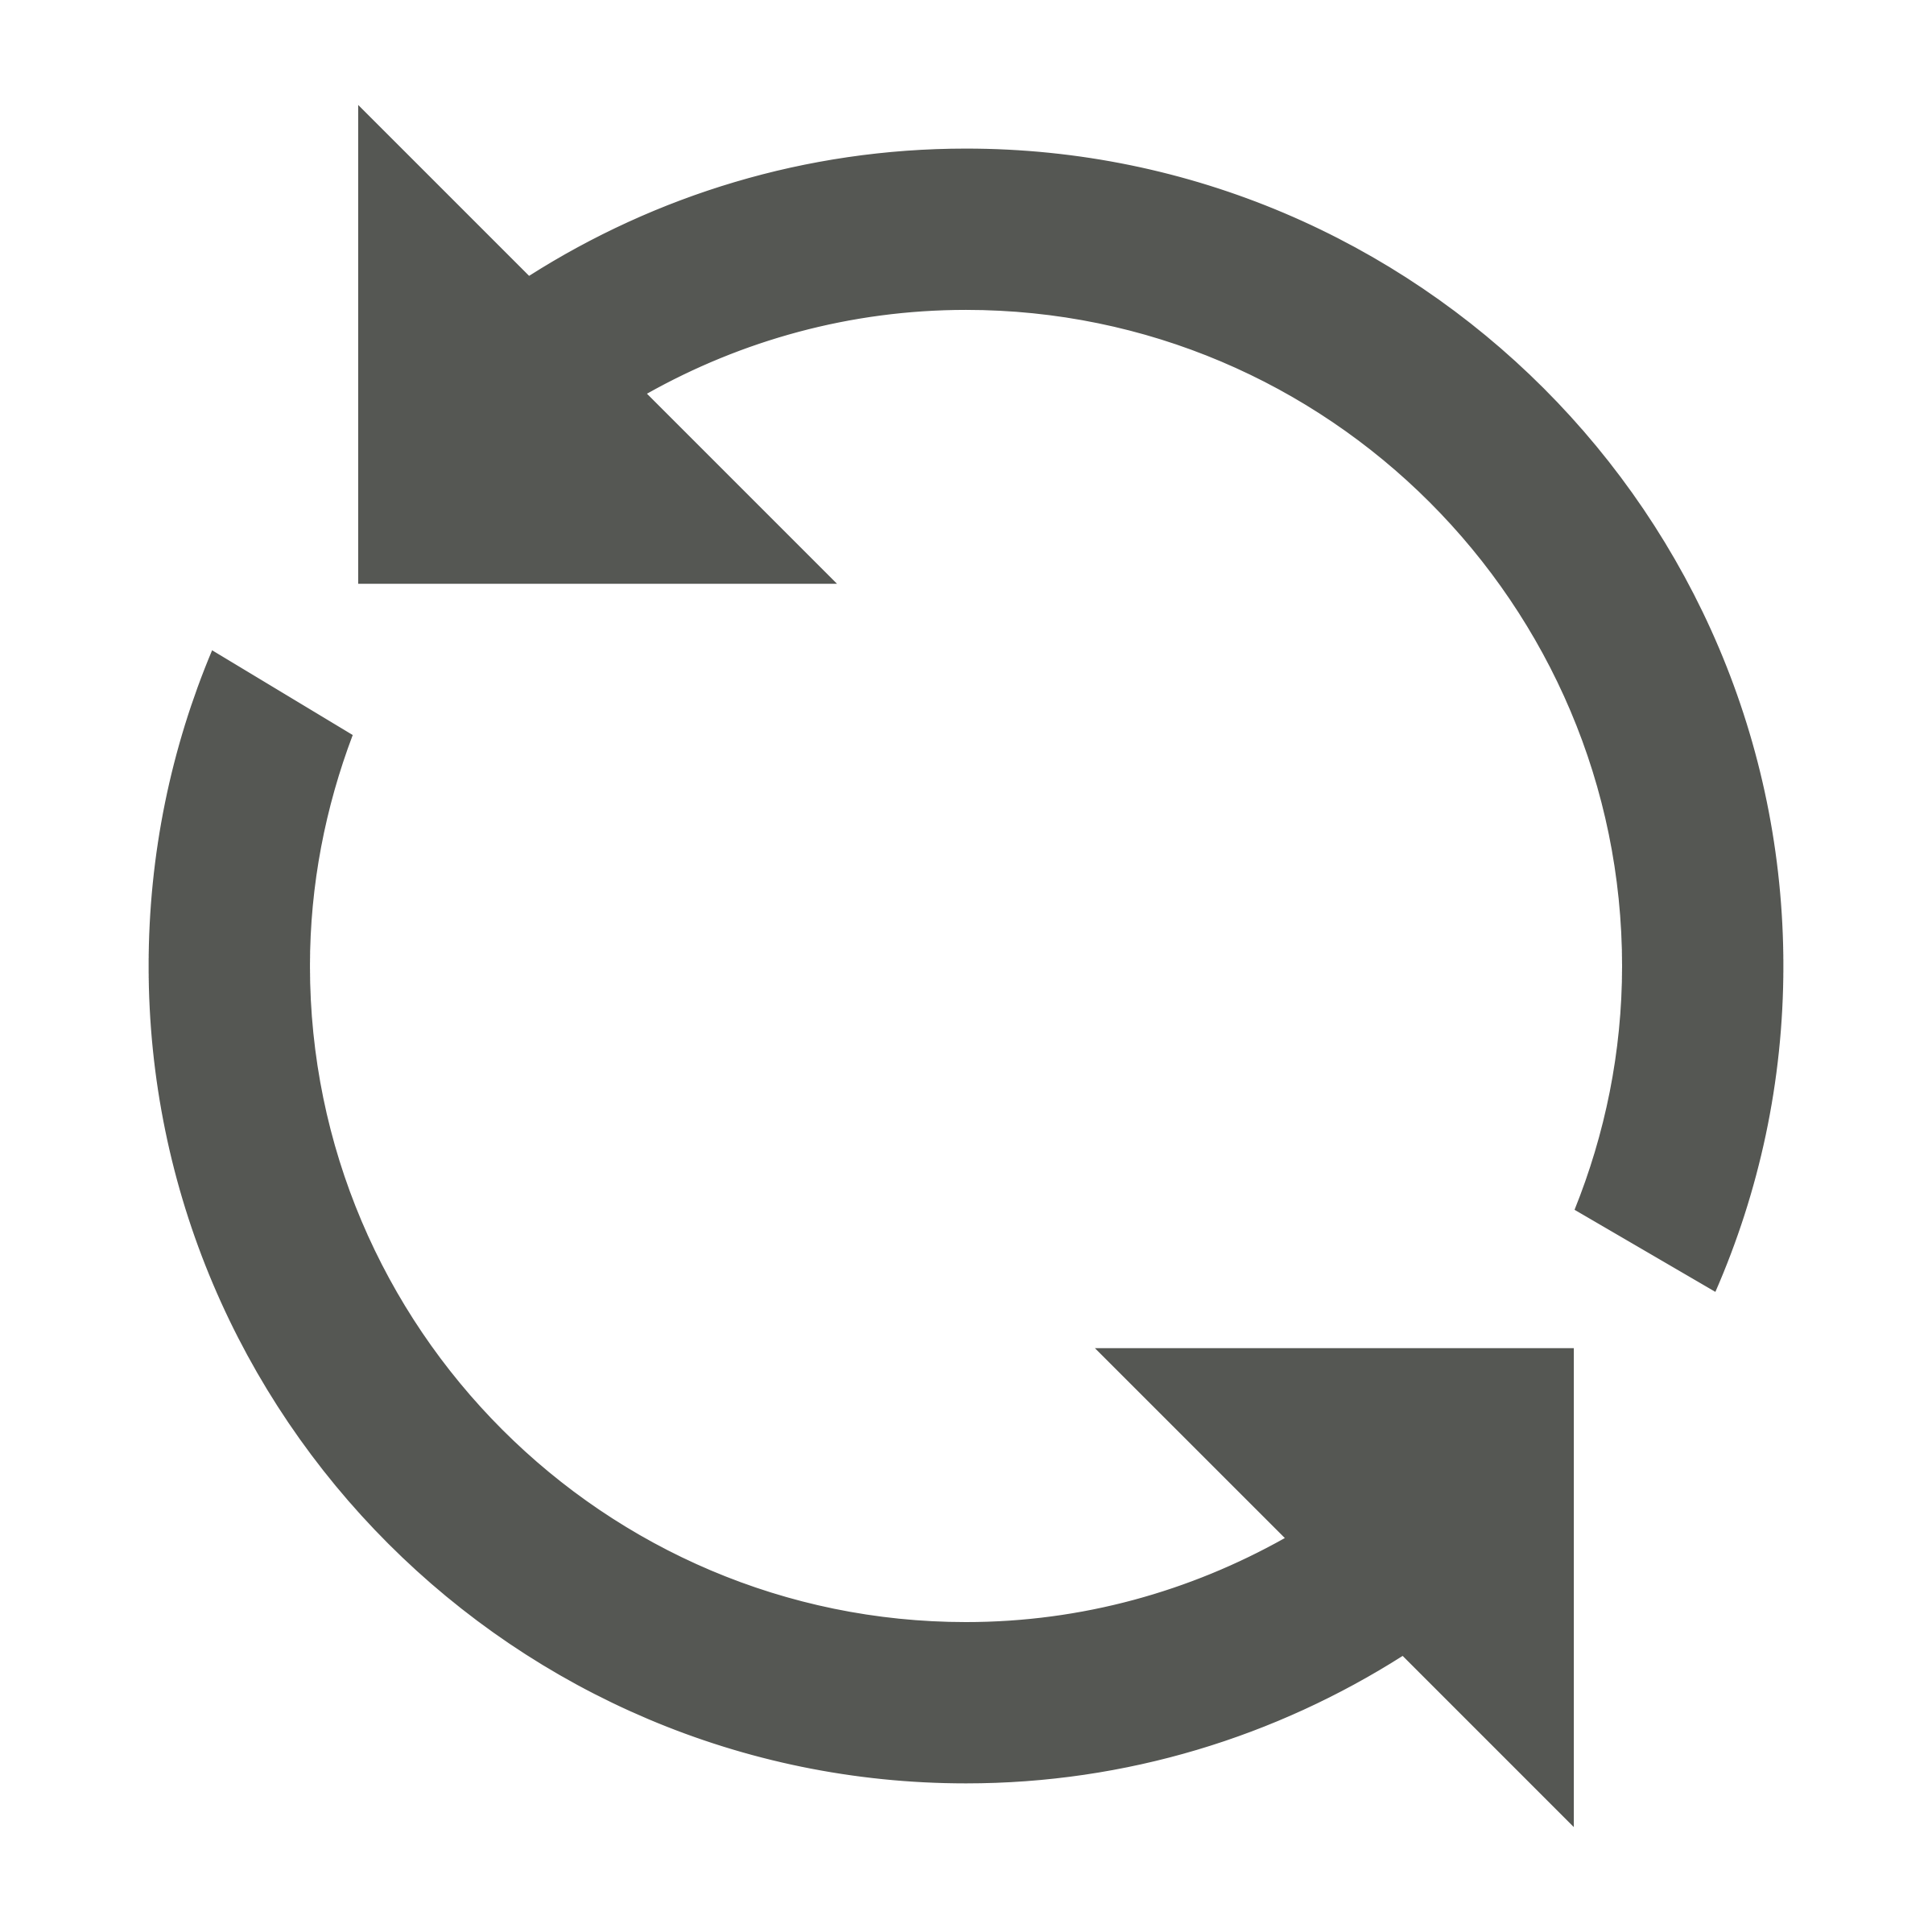 File:Refresh icon.png.